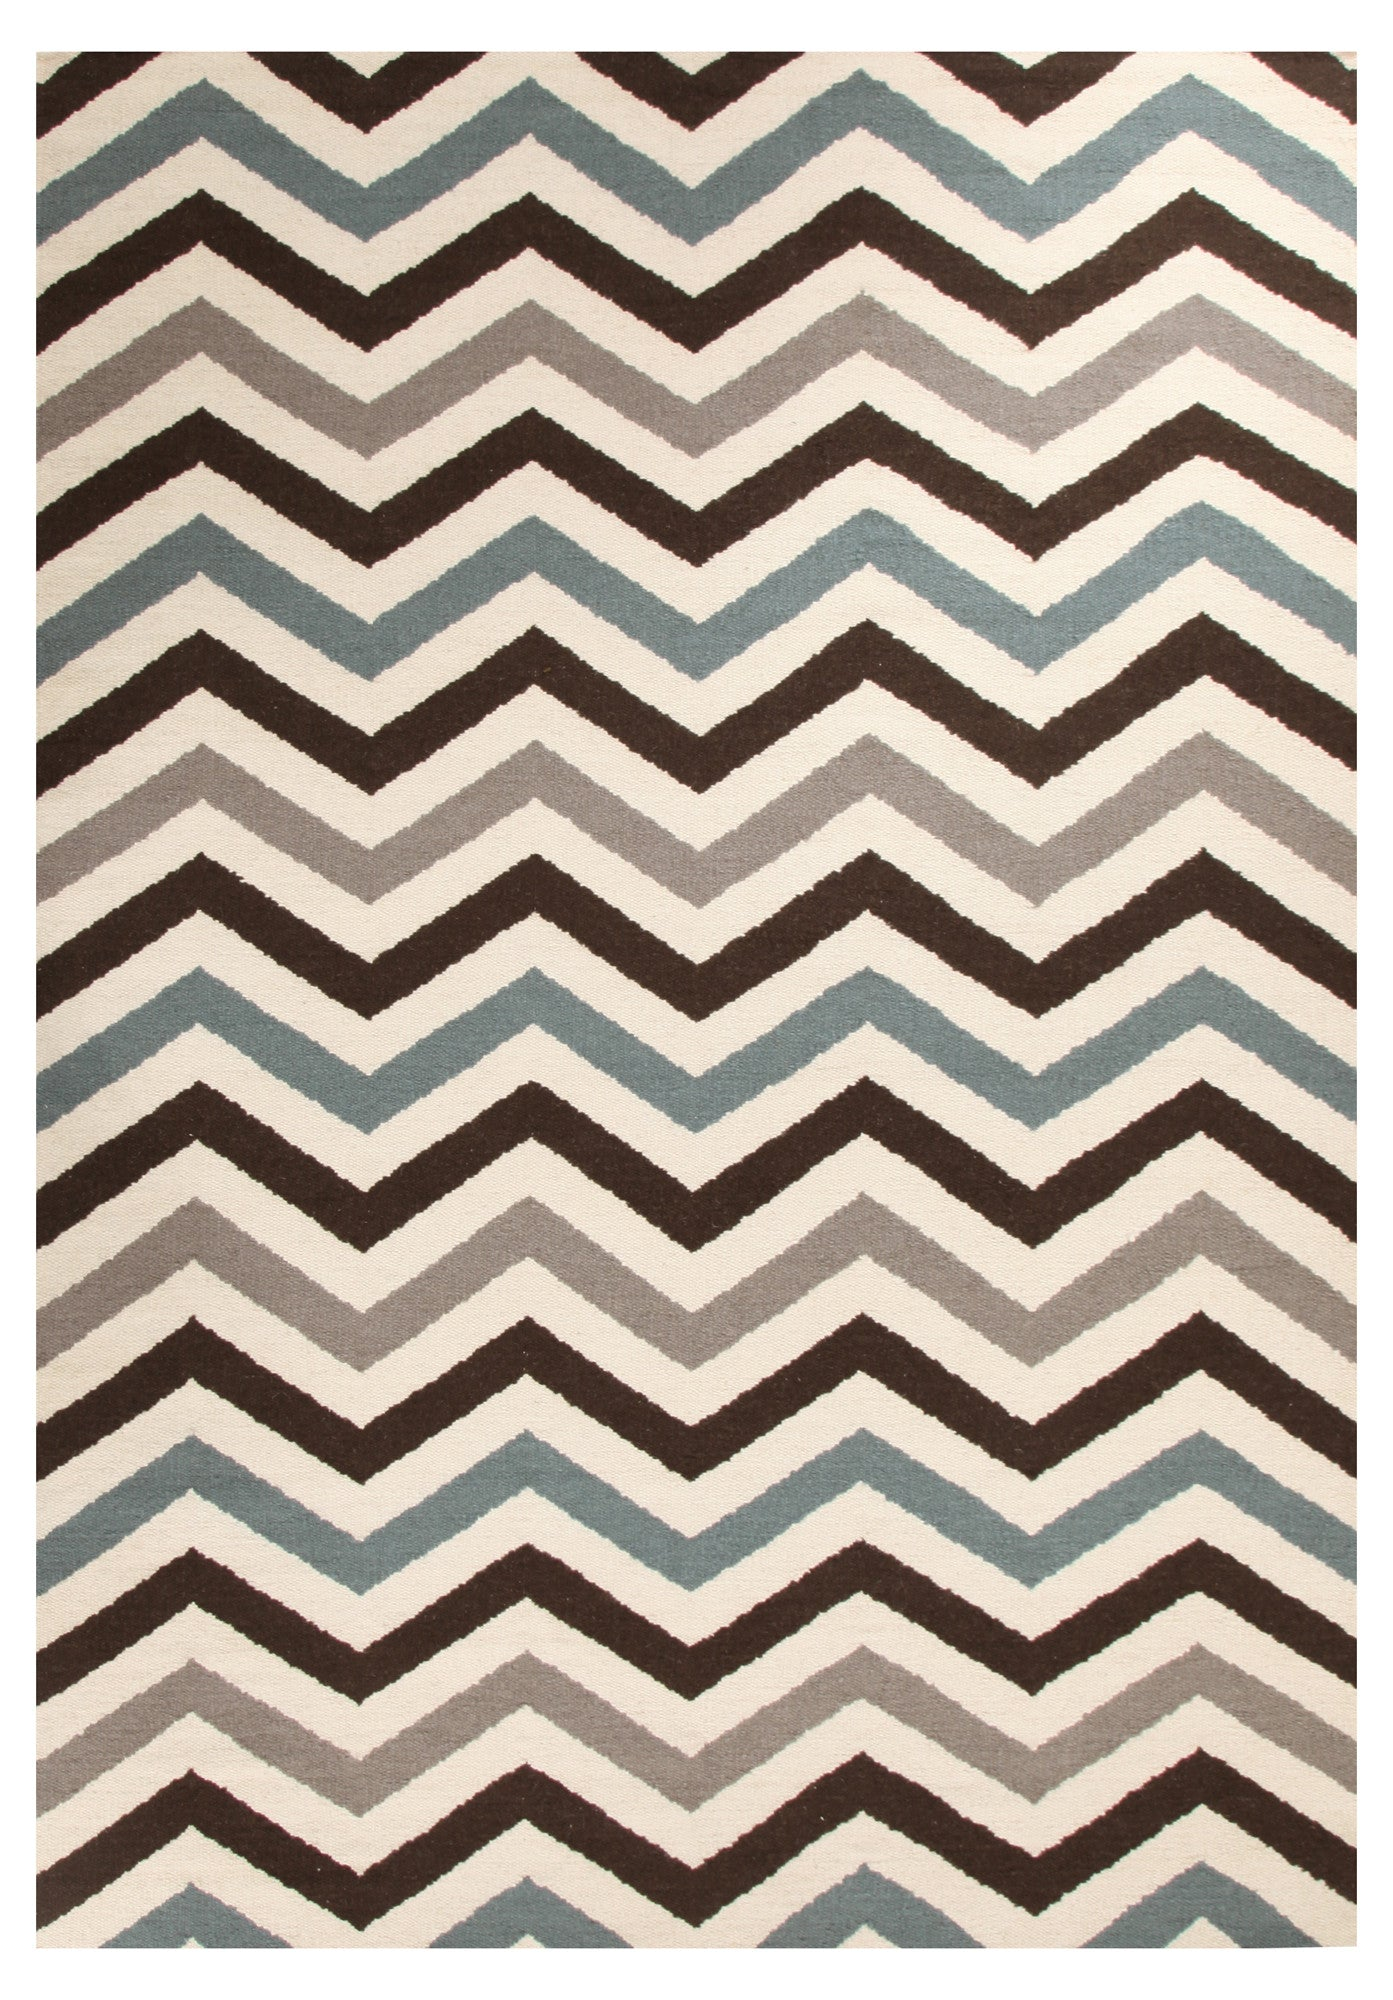 Nomad 18 Flat Weave Rug - Blue Brown Cream